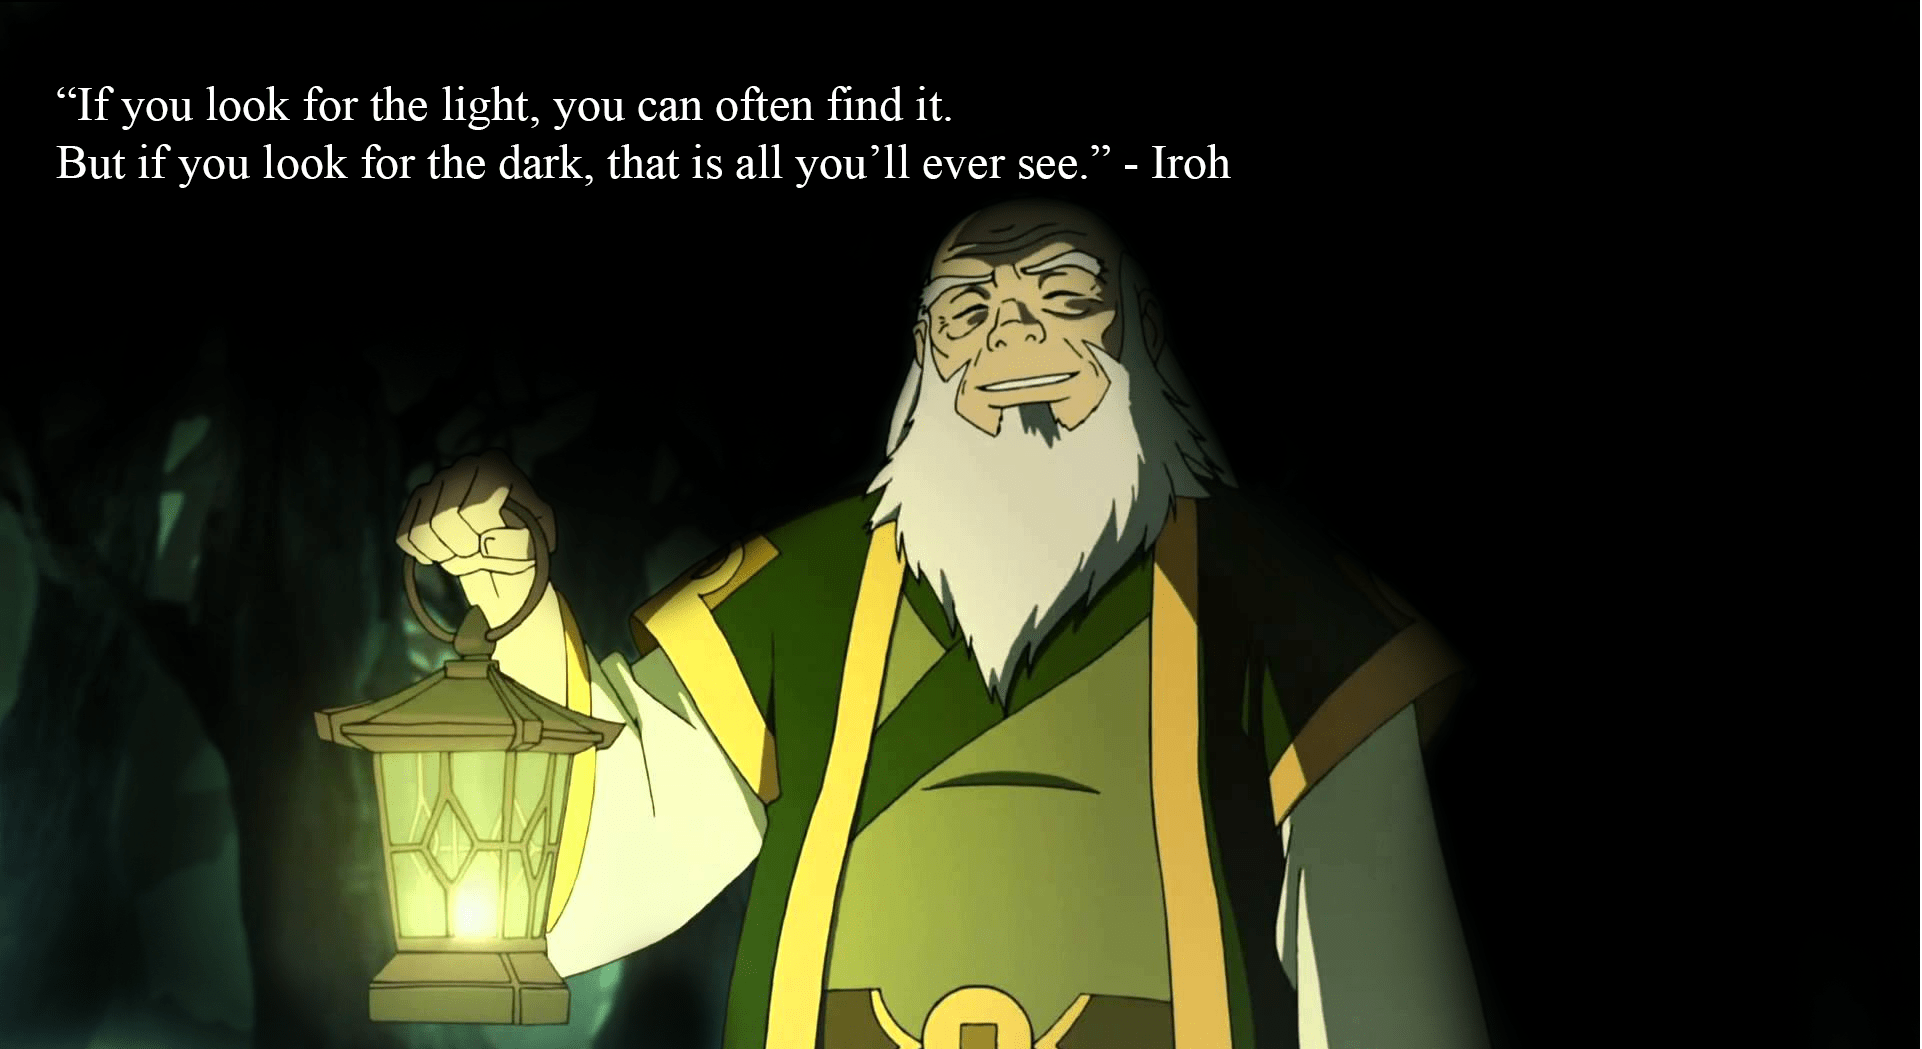 [Image] Look for the light